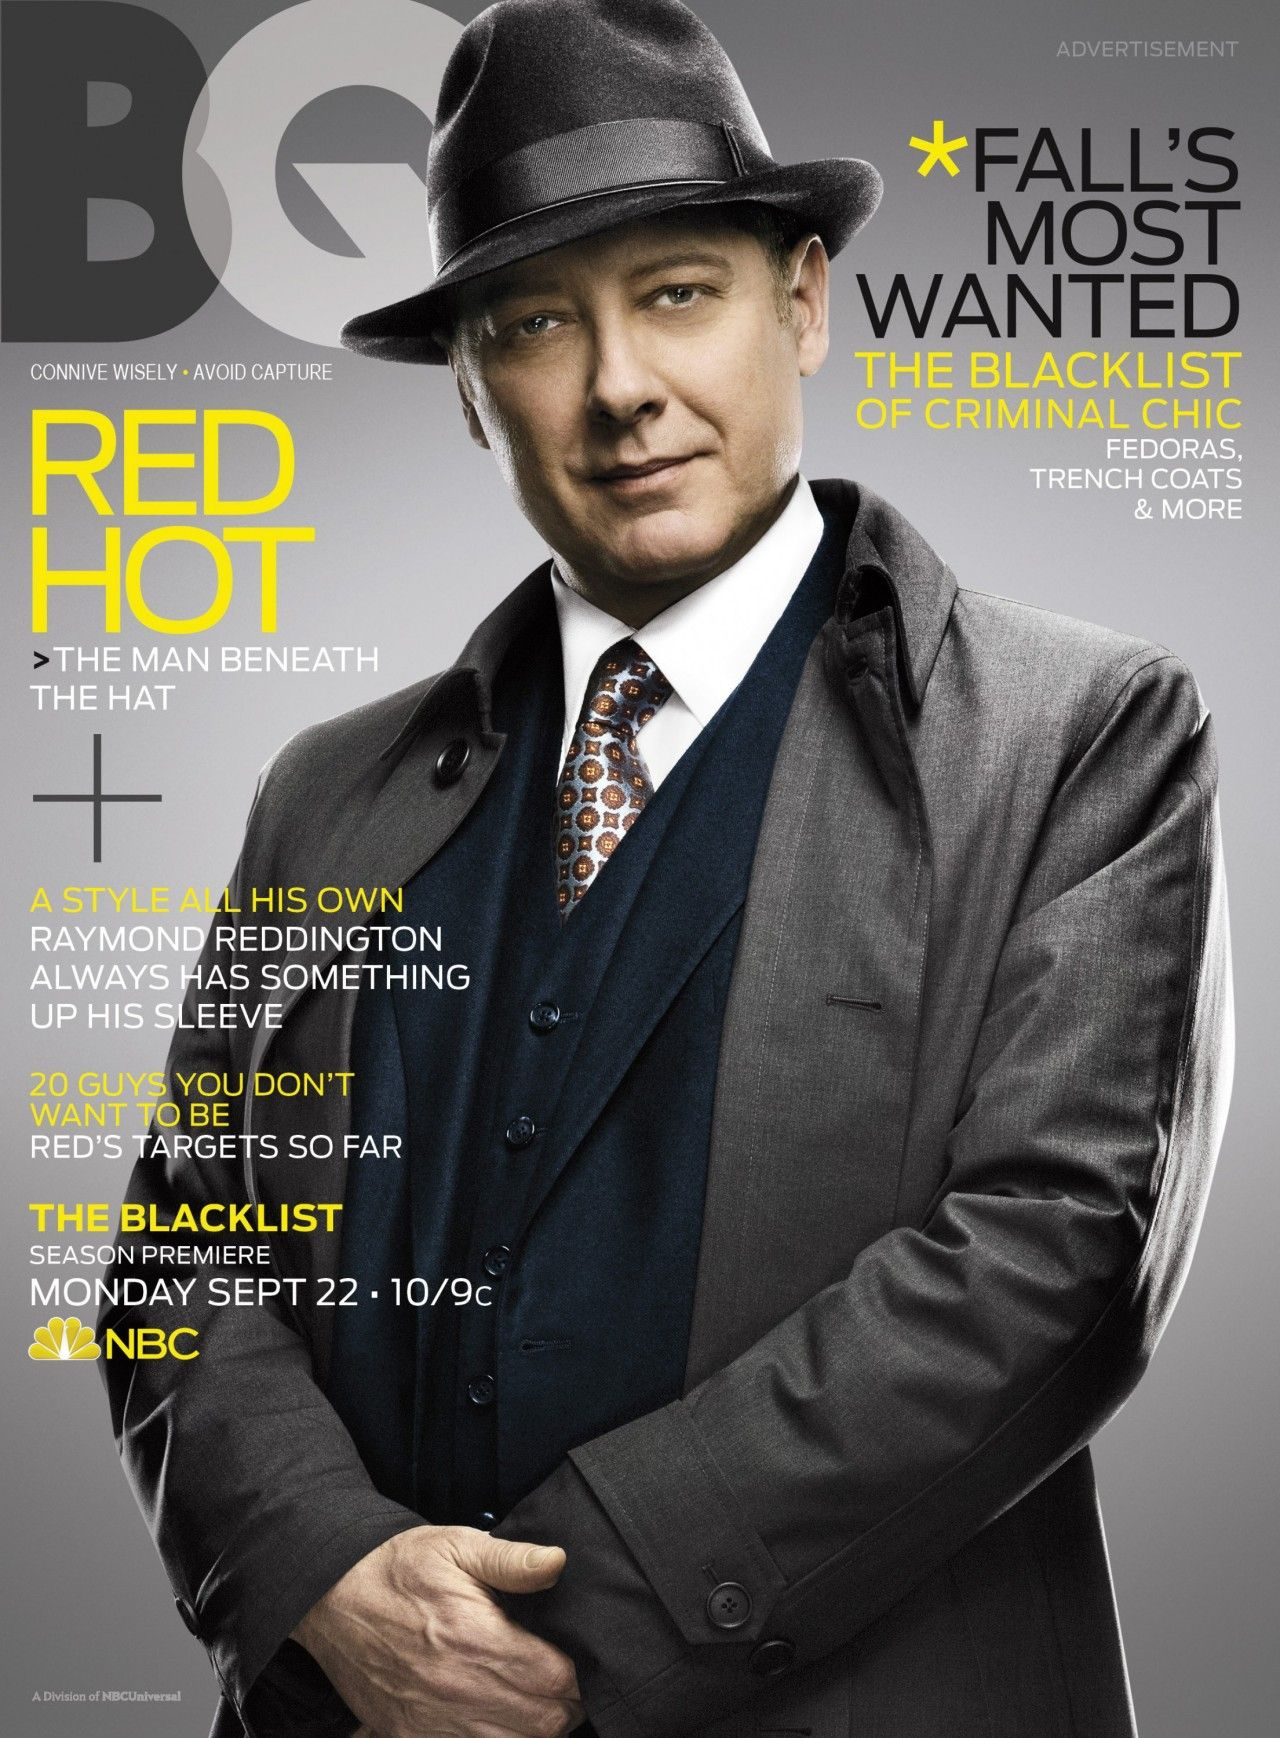 645d6369a4135 MS L. LUVS Blacklist Jacksepticeye — Raymond Reddington…The Sexiest  Concierge of Crime.